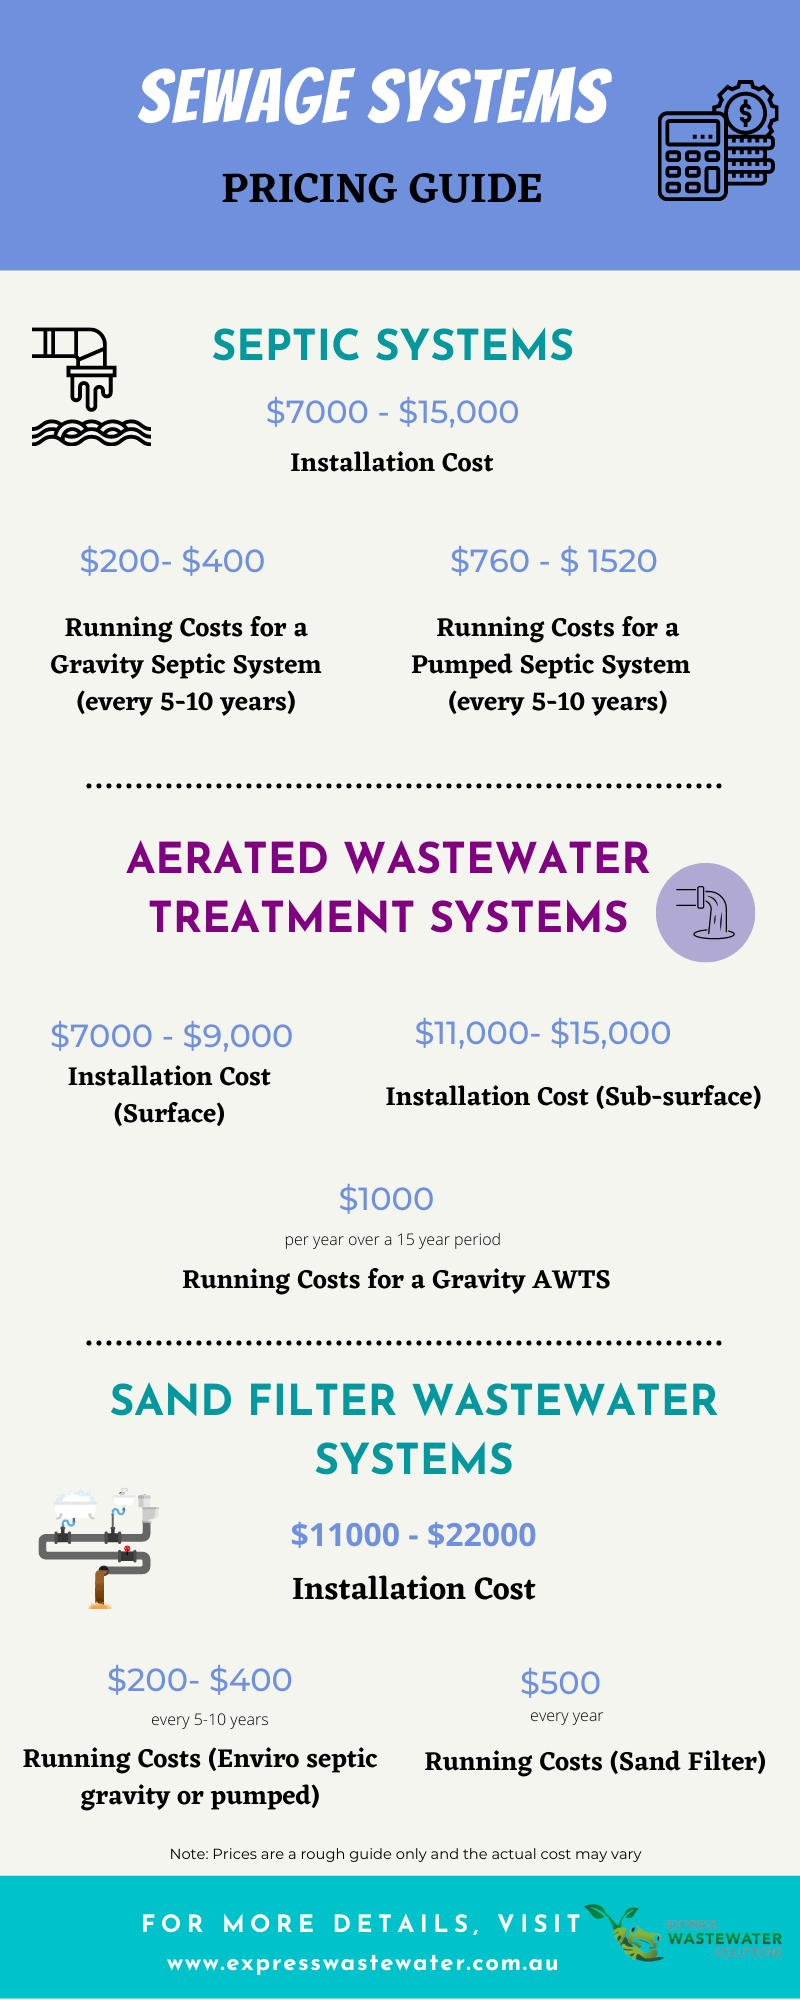 Sewage Systems |  HSTP Price Guide | Express Wastewater